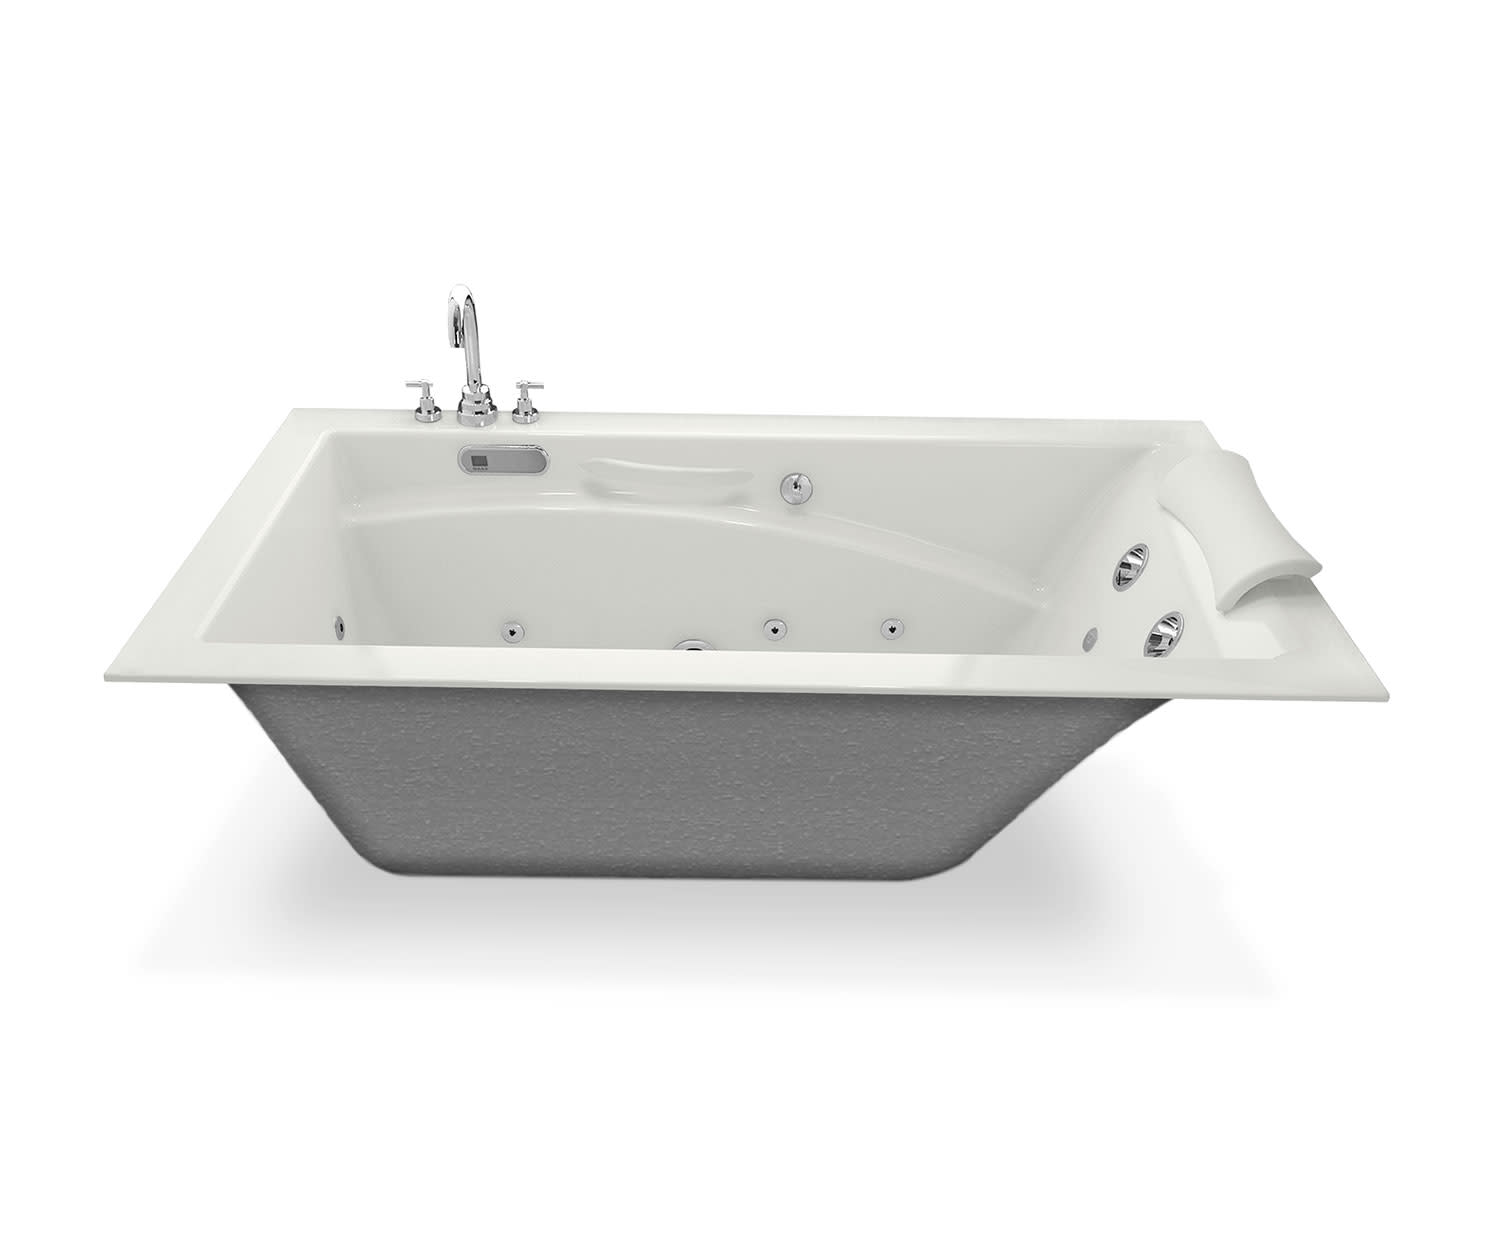 Maax 101265-054 Optik 6032 Hydrofeel Tub | QualityBath.com